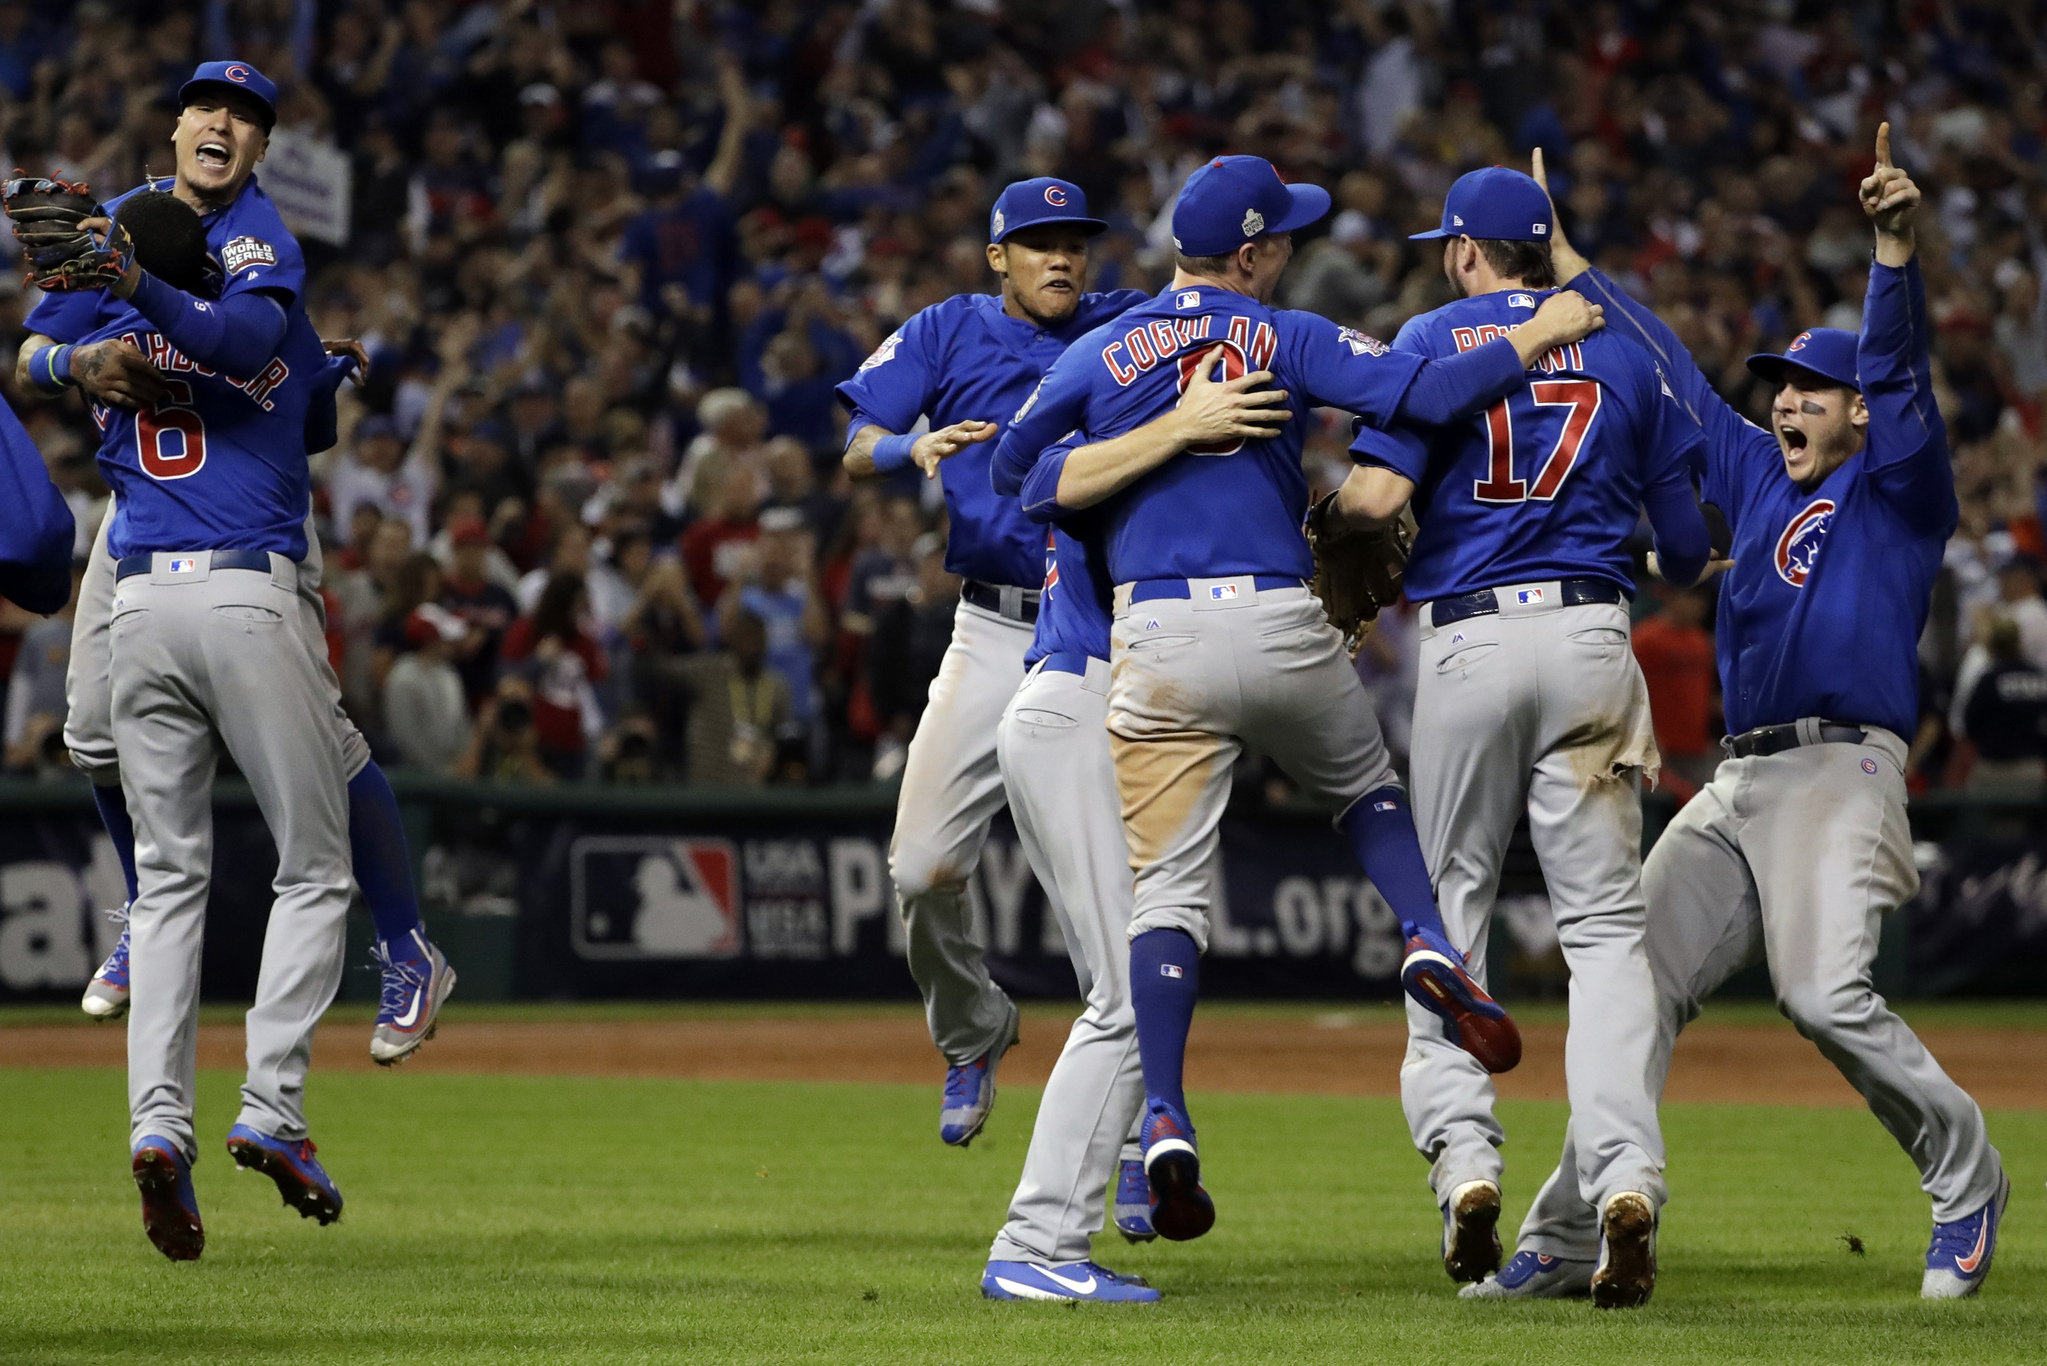 Cubs win 1st World Series since 1908 holding off Indians